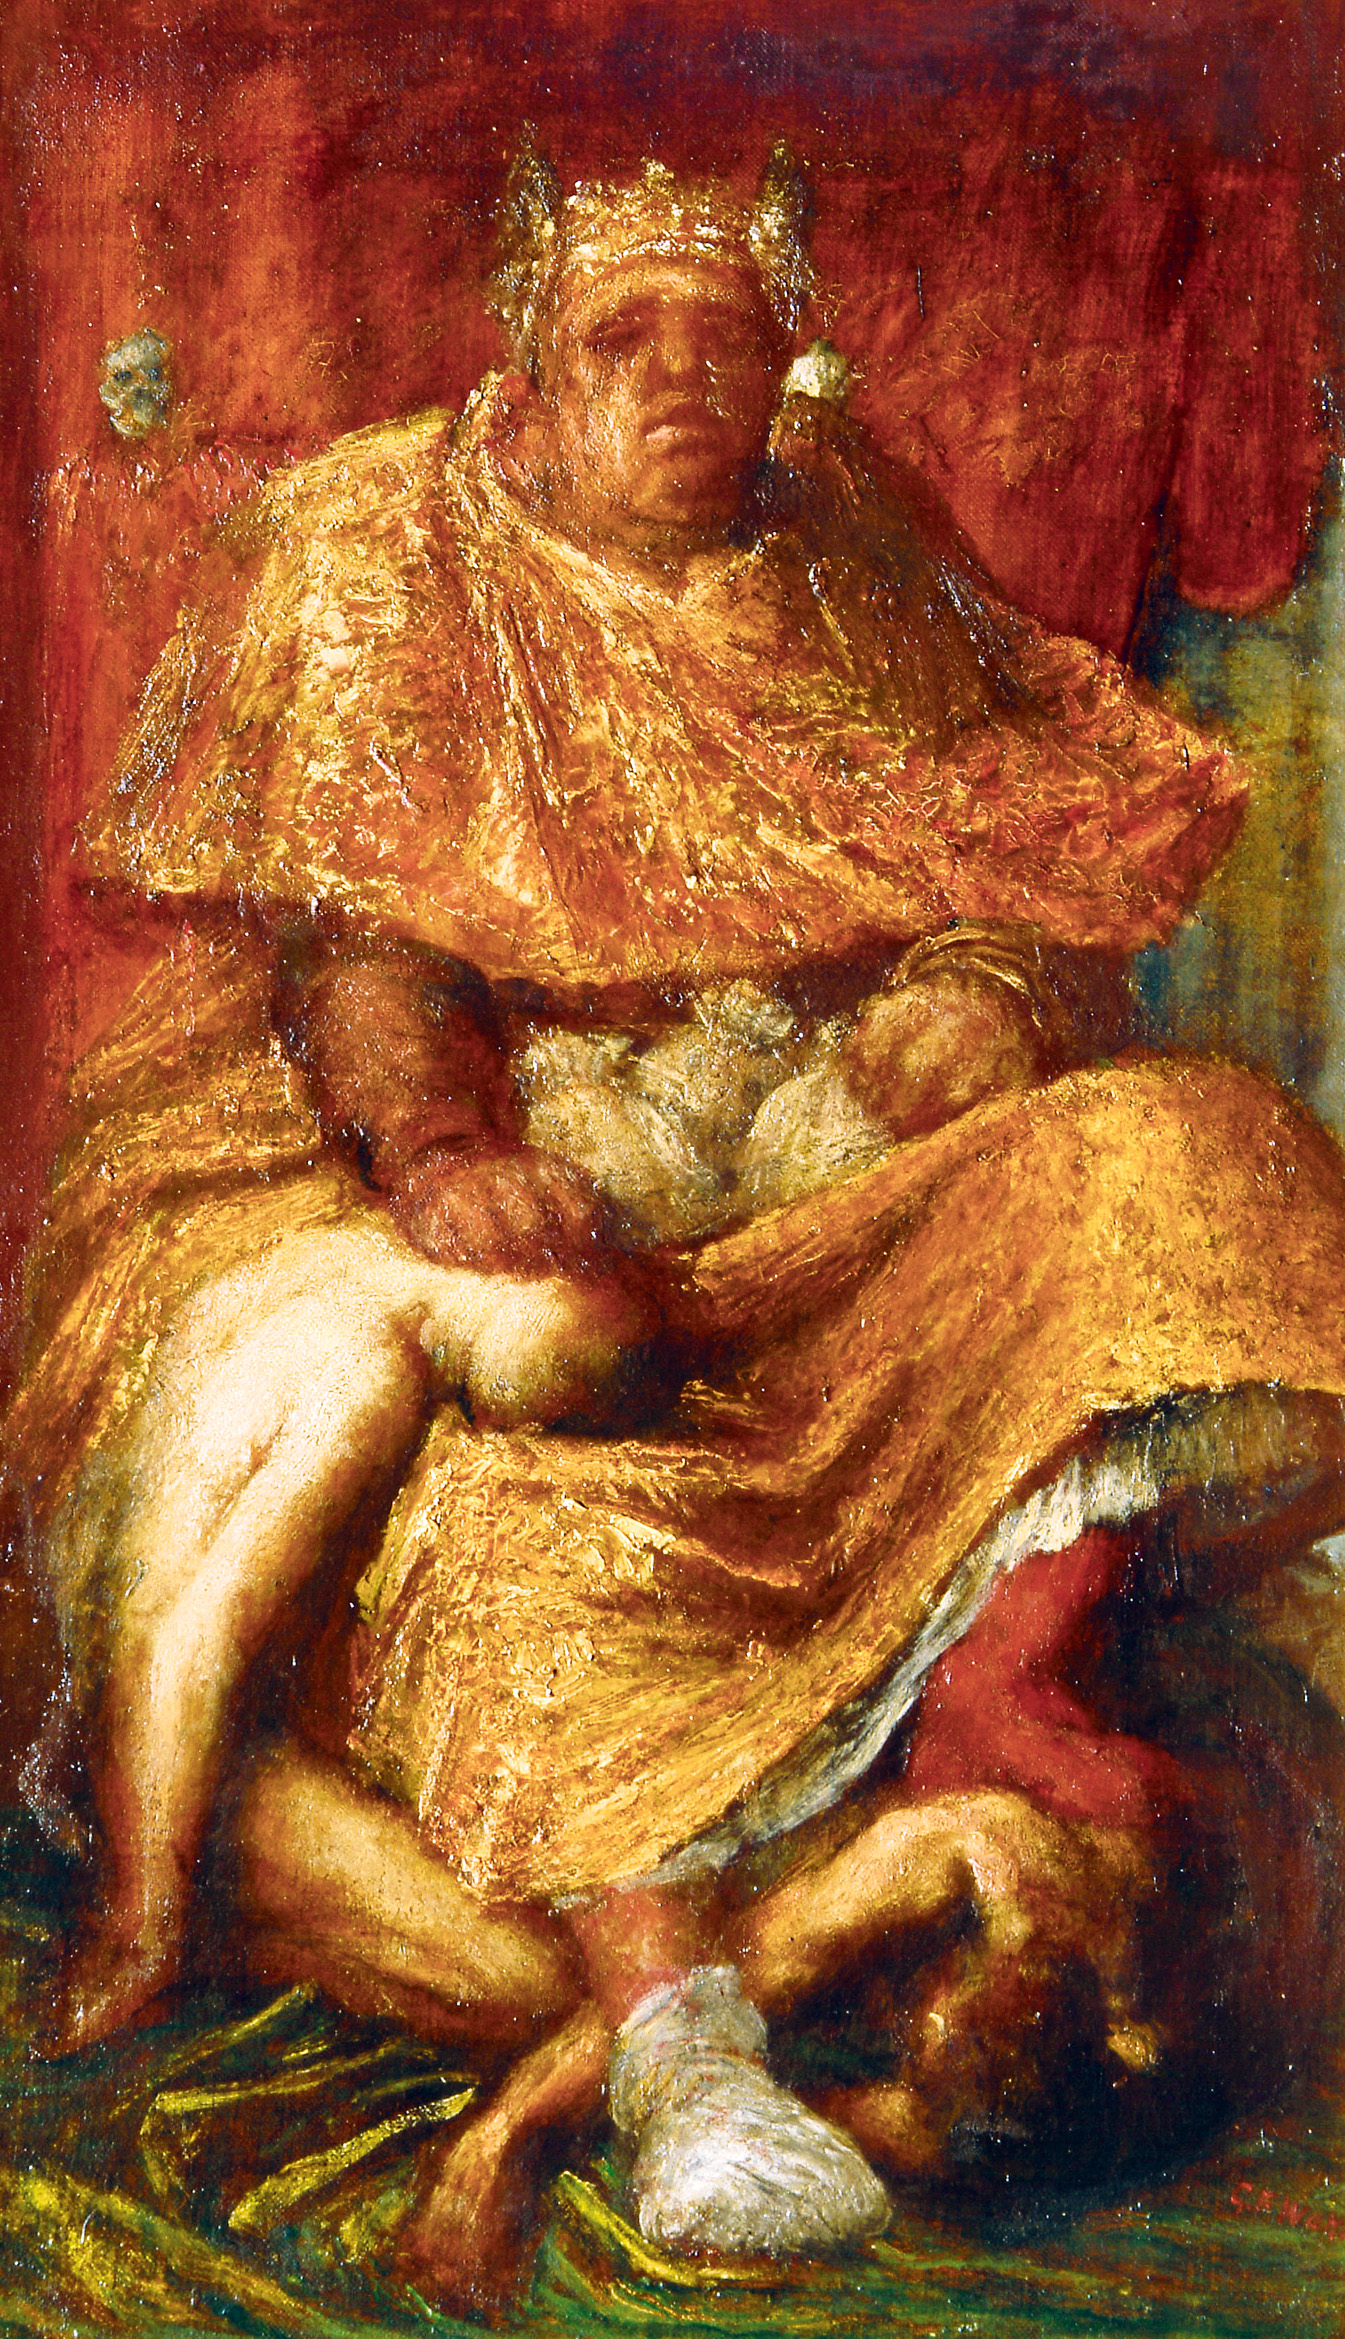 Mammon, by George Frederick Watts, 1885. Tate Gallery, London, United Kingdom.